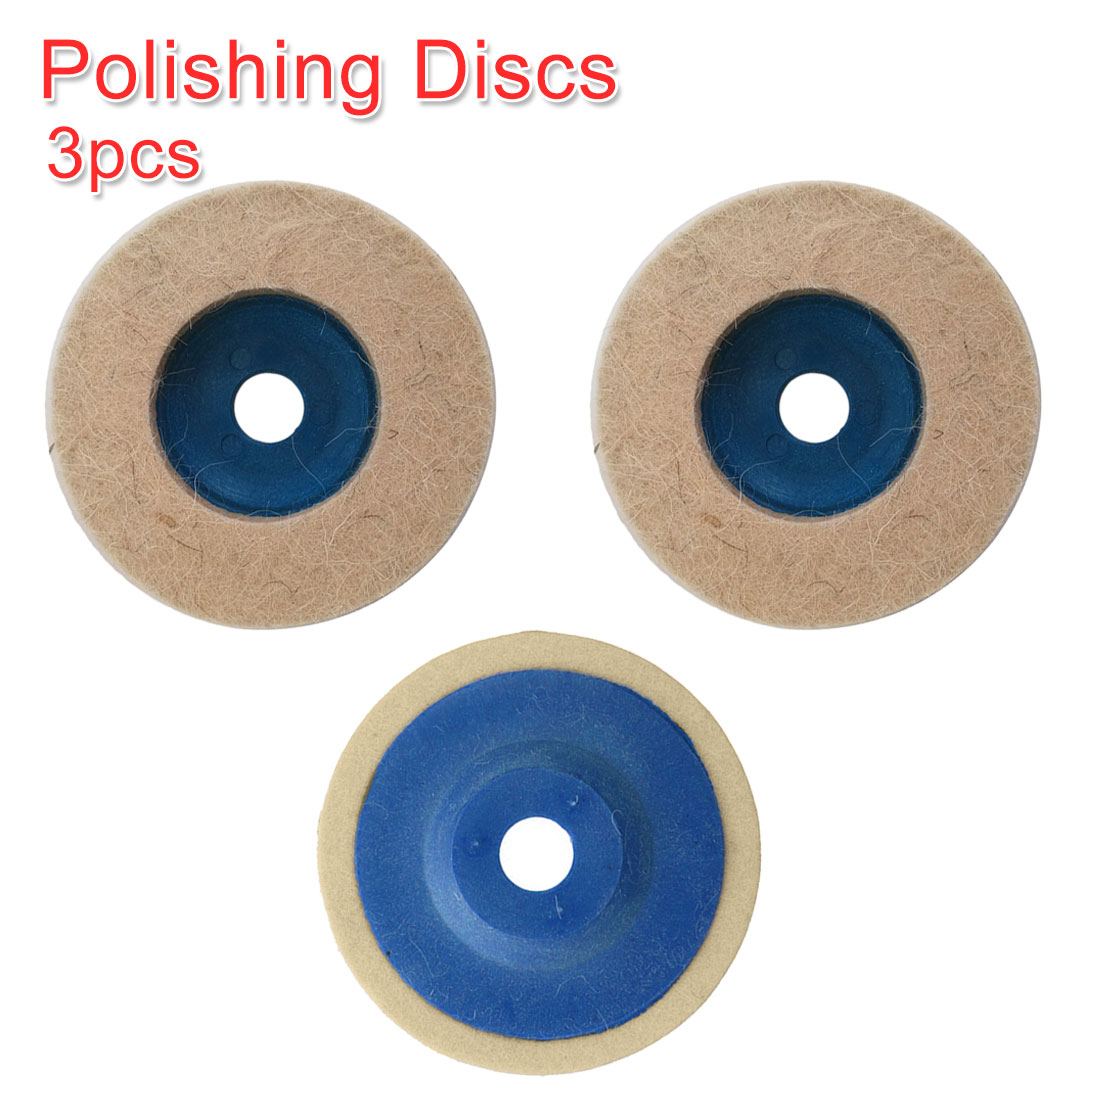 4 Inch 3pcs Wool Polishing Pads Buffing Angle Grinder Wheel Felt Polishing Disc Pad Set 100mm